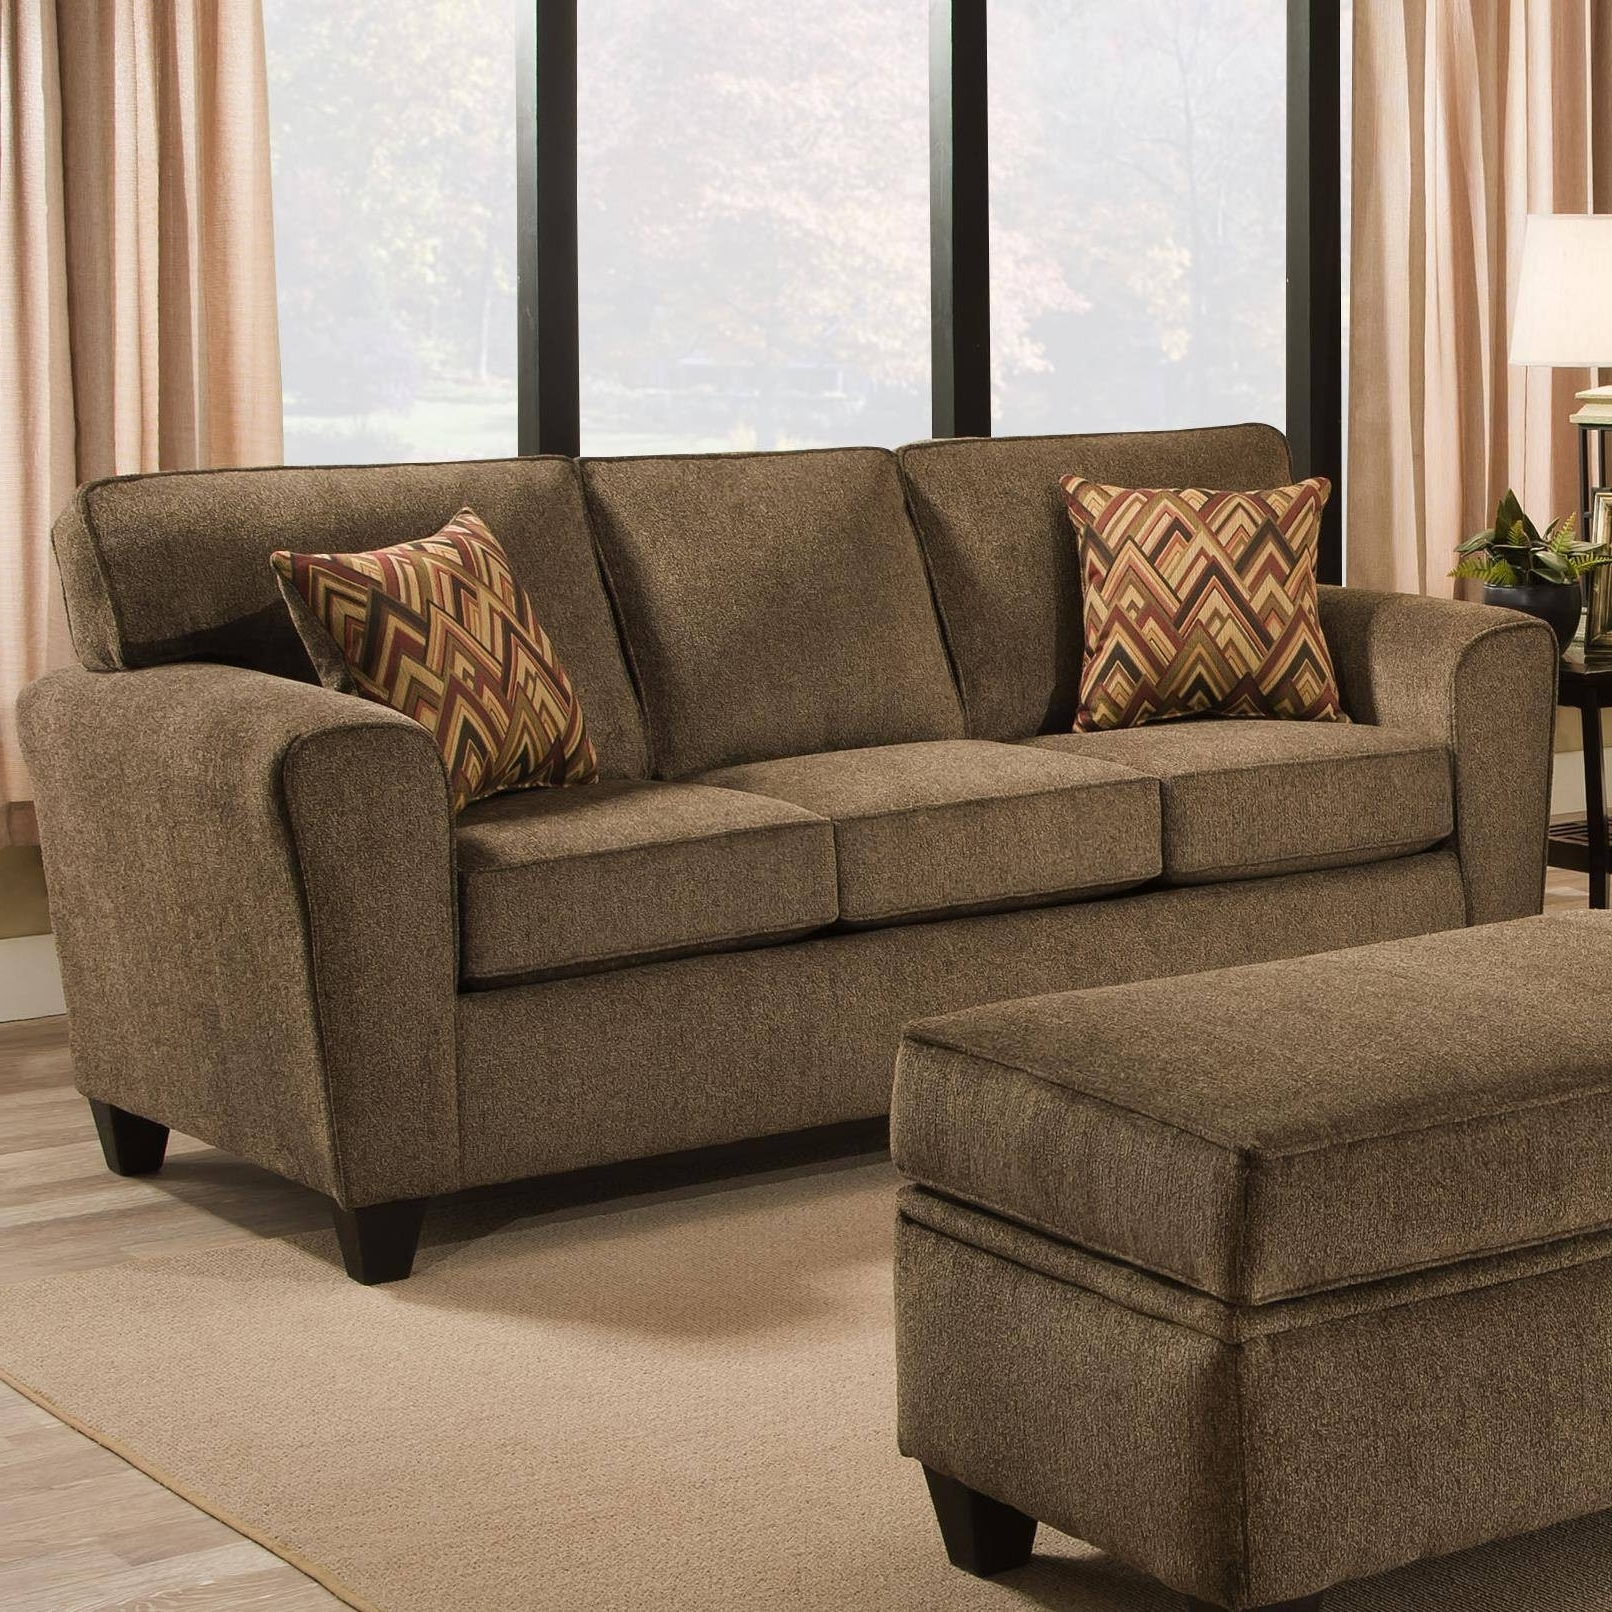 Trendy Furniture : Ethan Allen Down Filled Sofa Beautiful Sectional Sofas Regarding Down Filled Sofas (View 7 of 15)